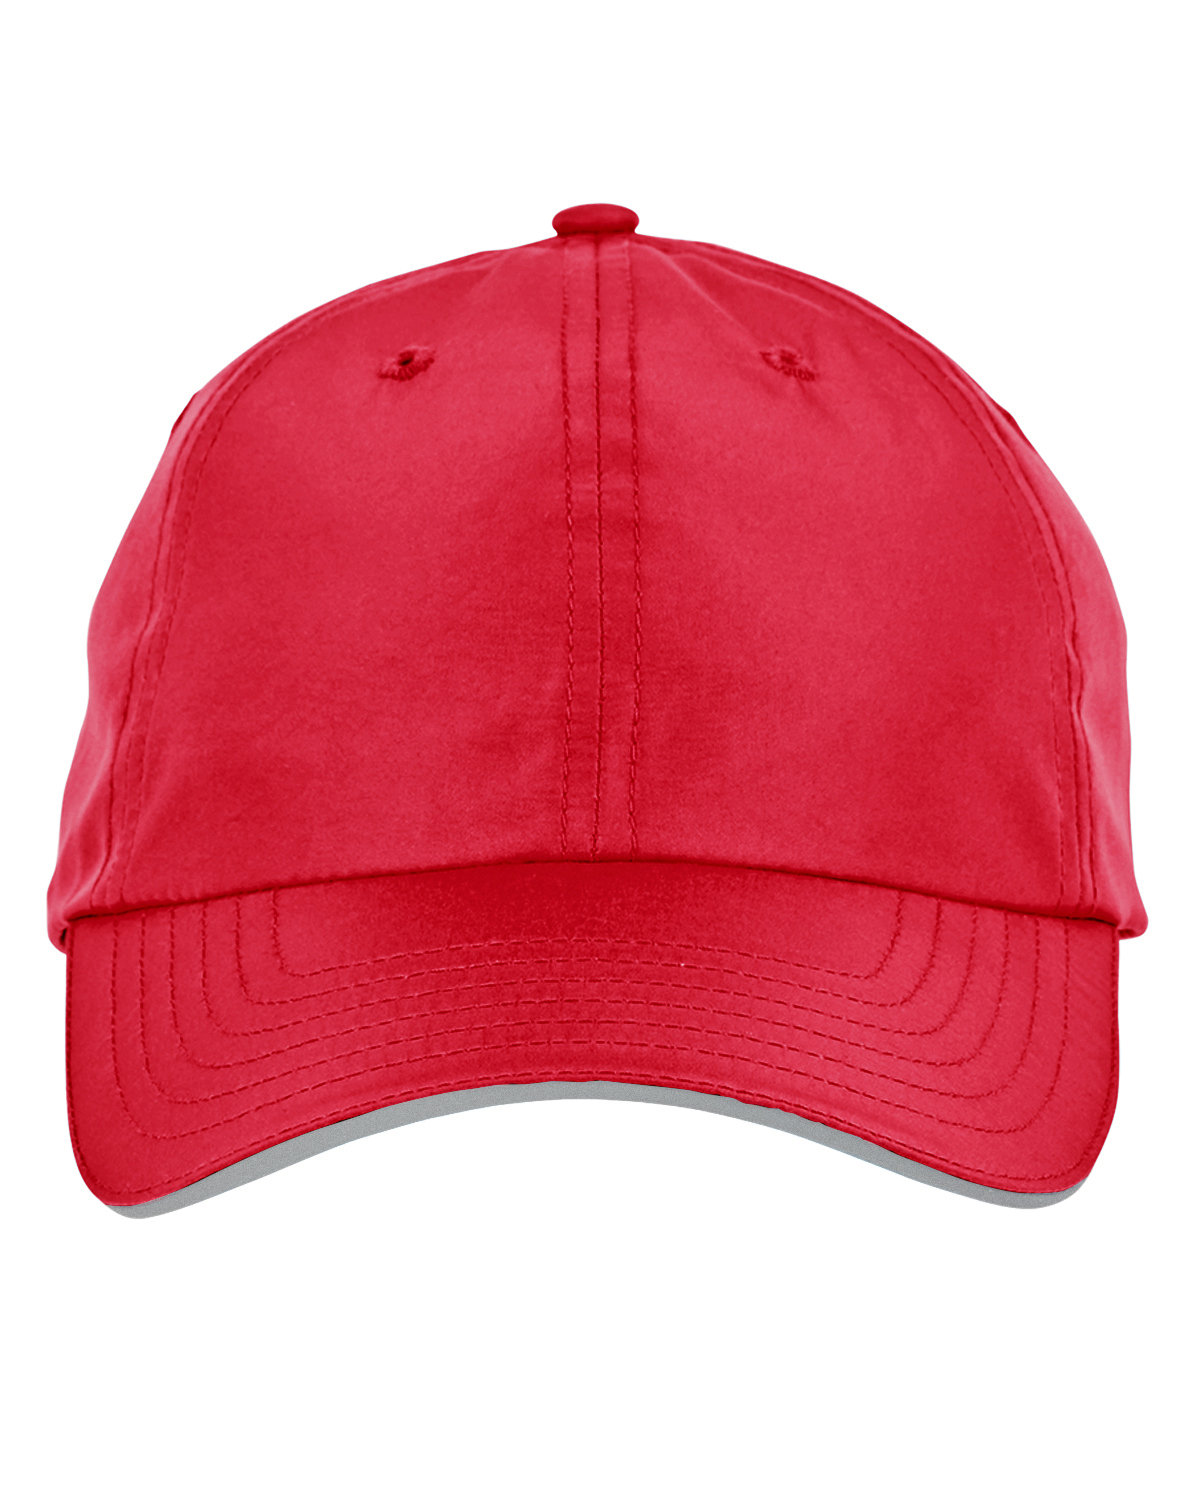 Core 365 Adult Pitch Performance Cap CLASSIC RED